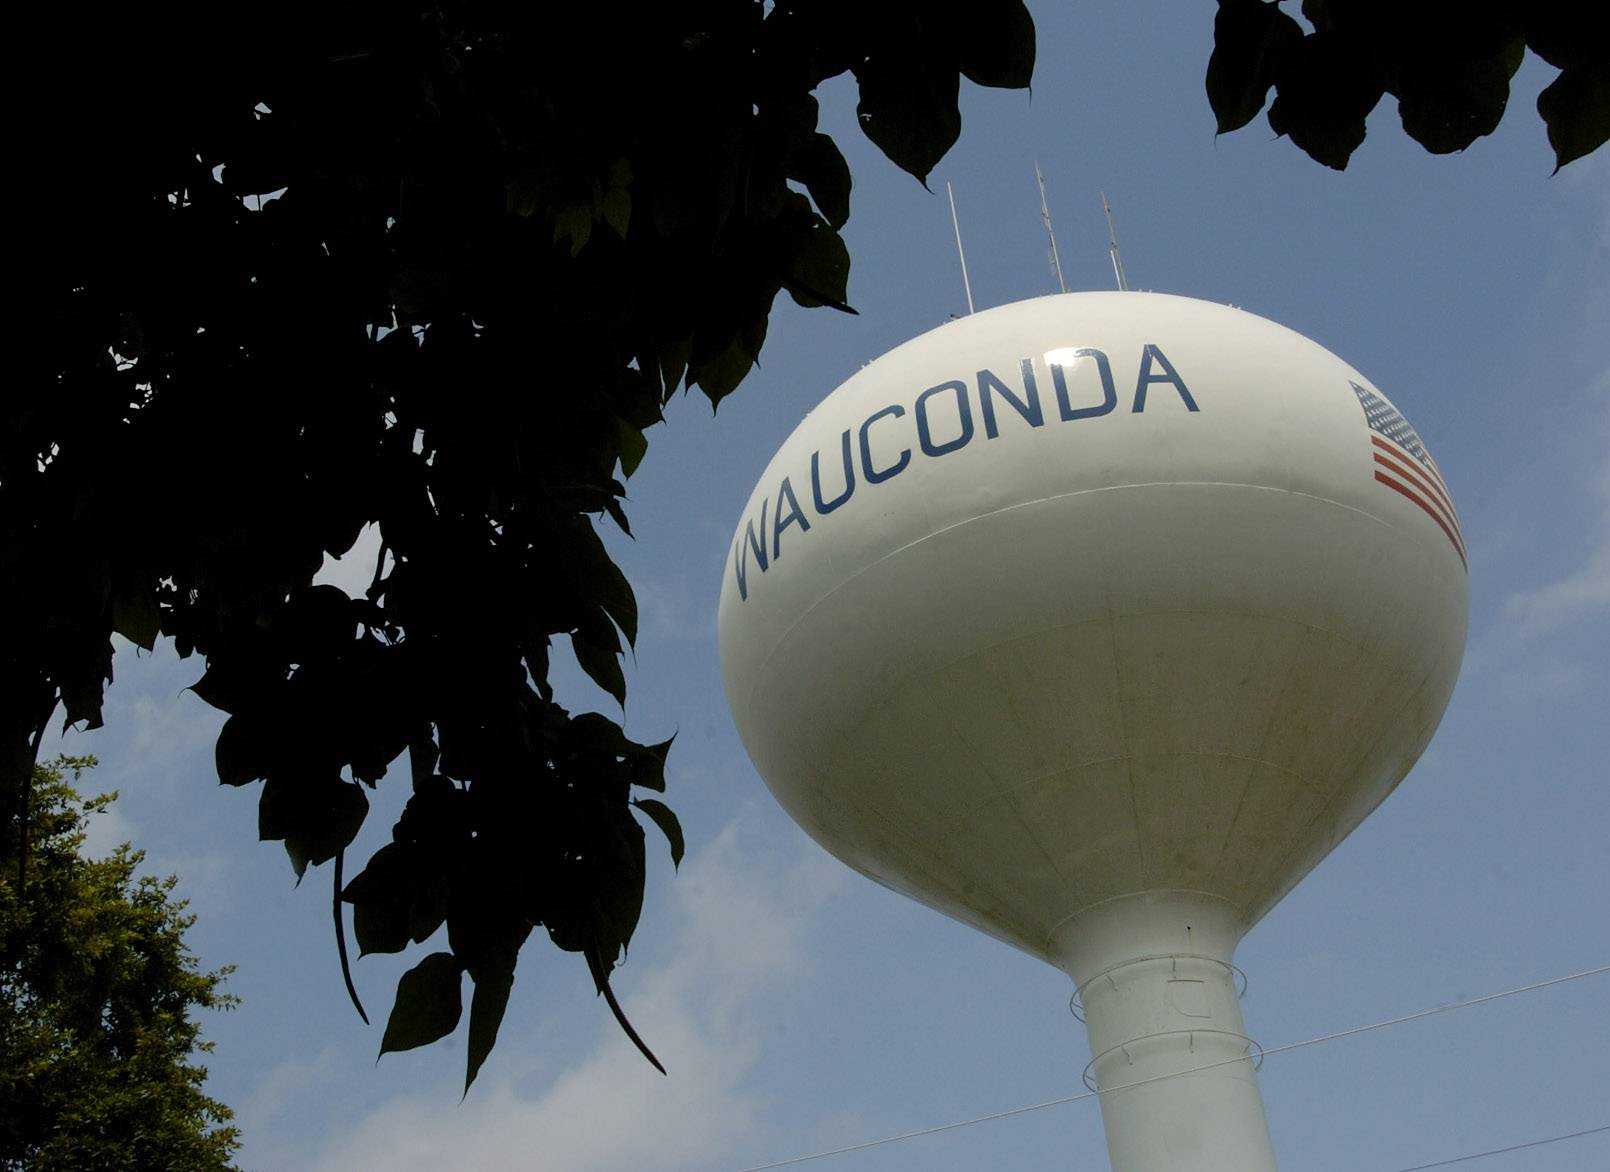 Water system construction big part of Wauconda's proposed budget